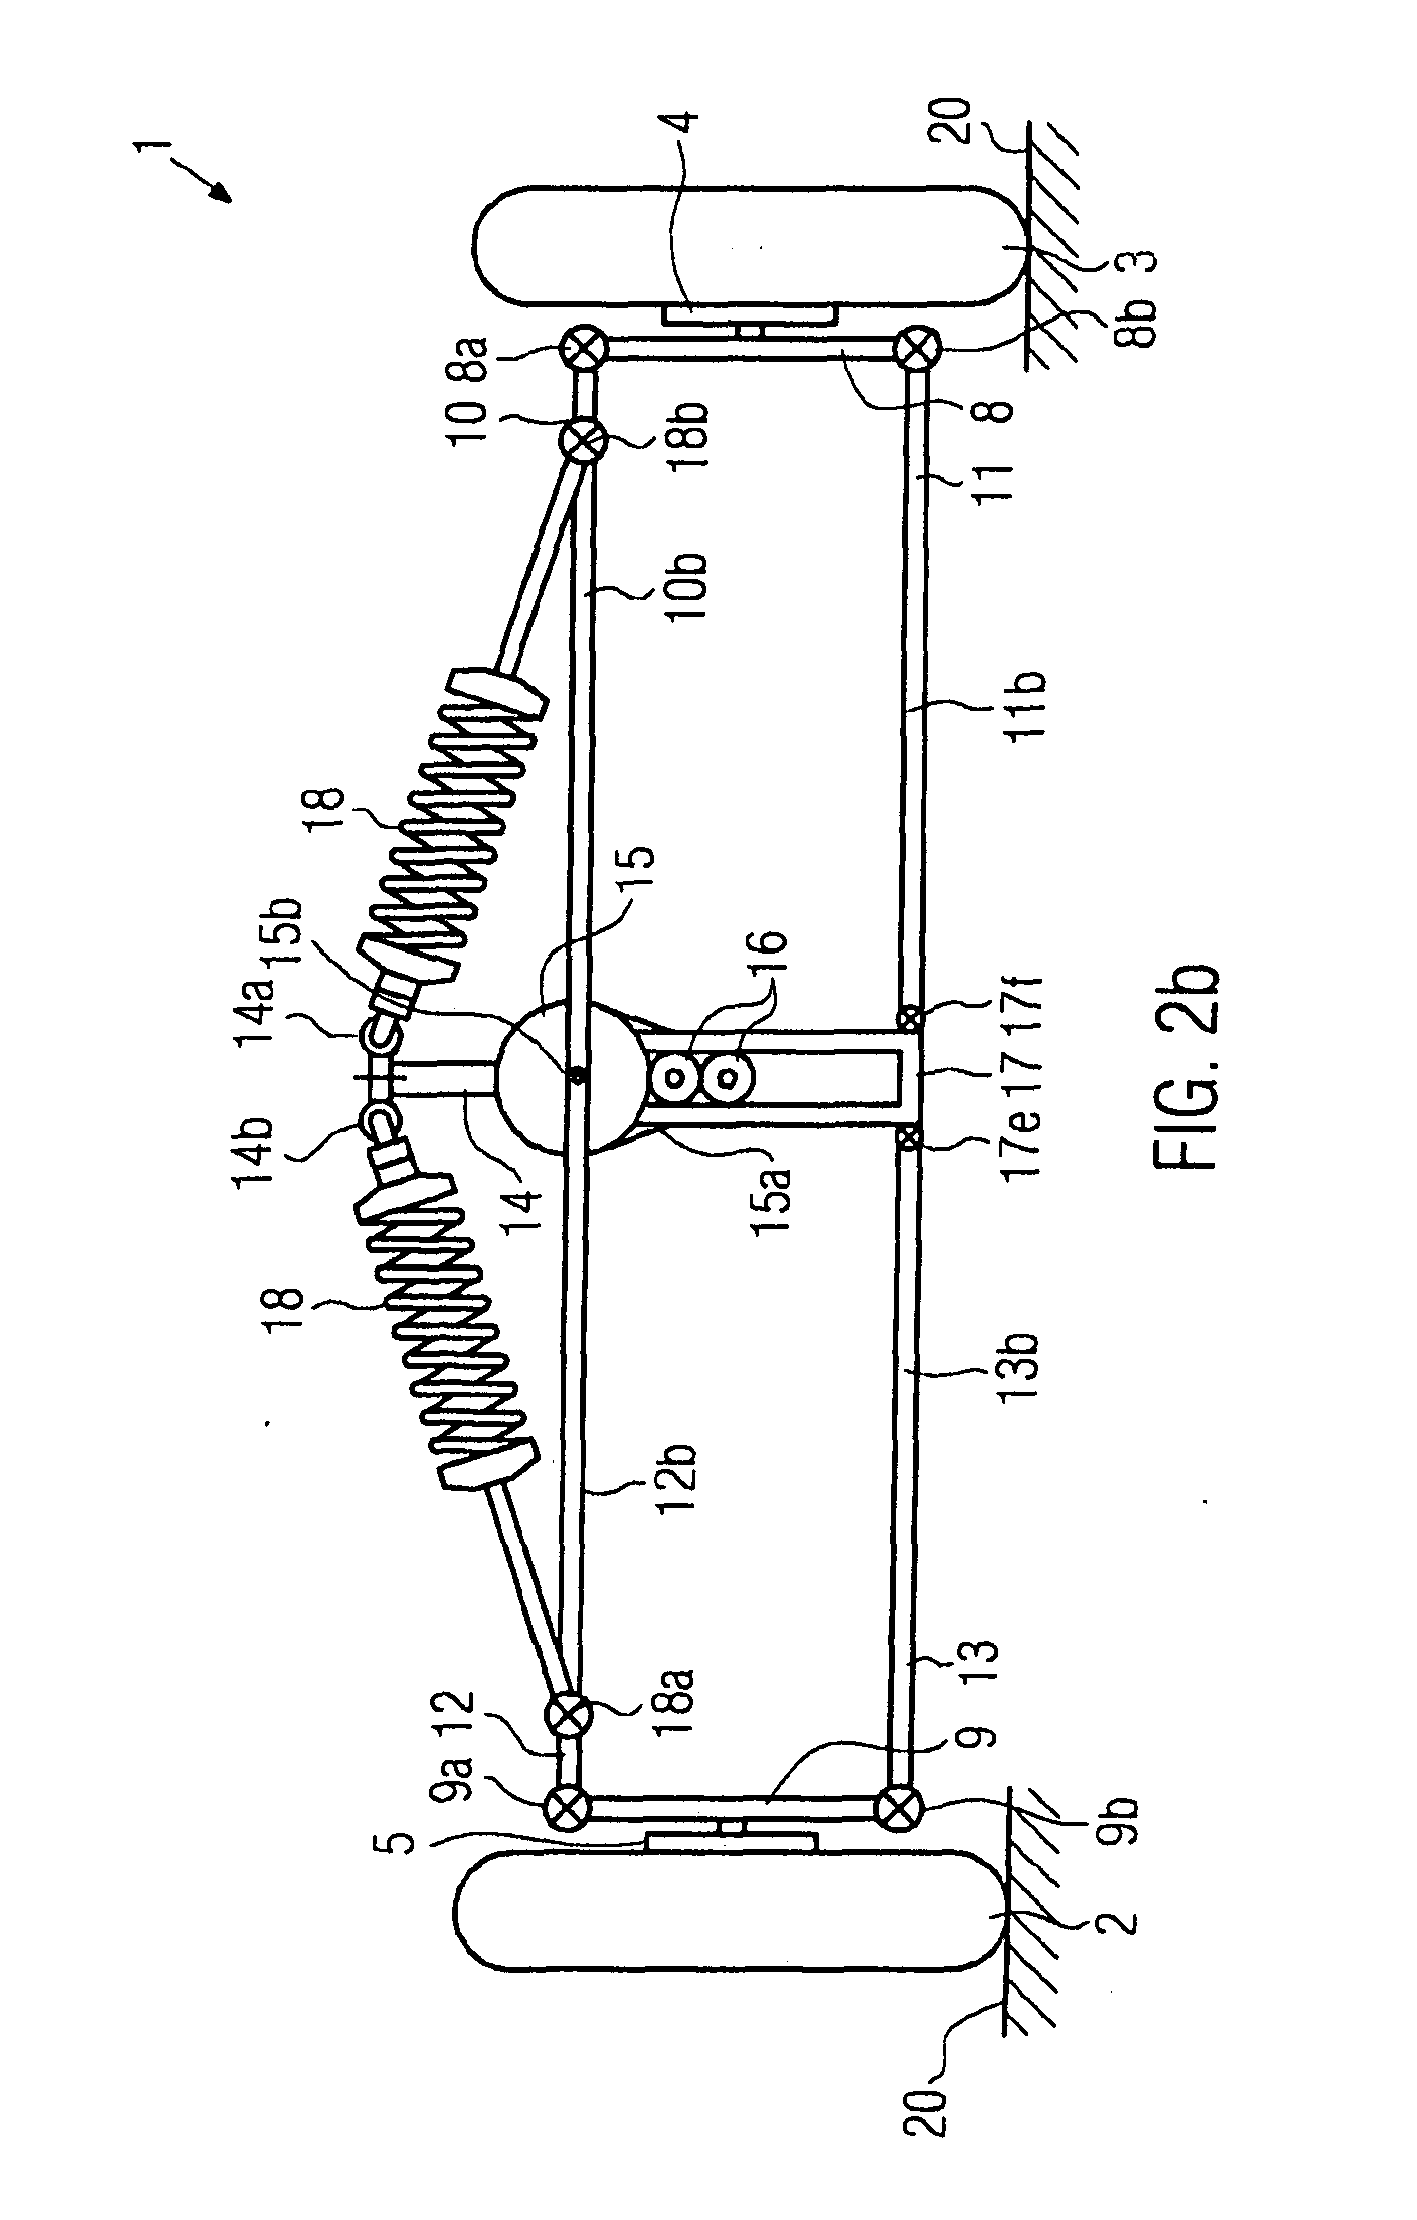 Suspension Design Report Patent Ep1798081a1 Vehicle With Tilting Suspension